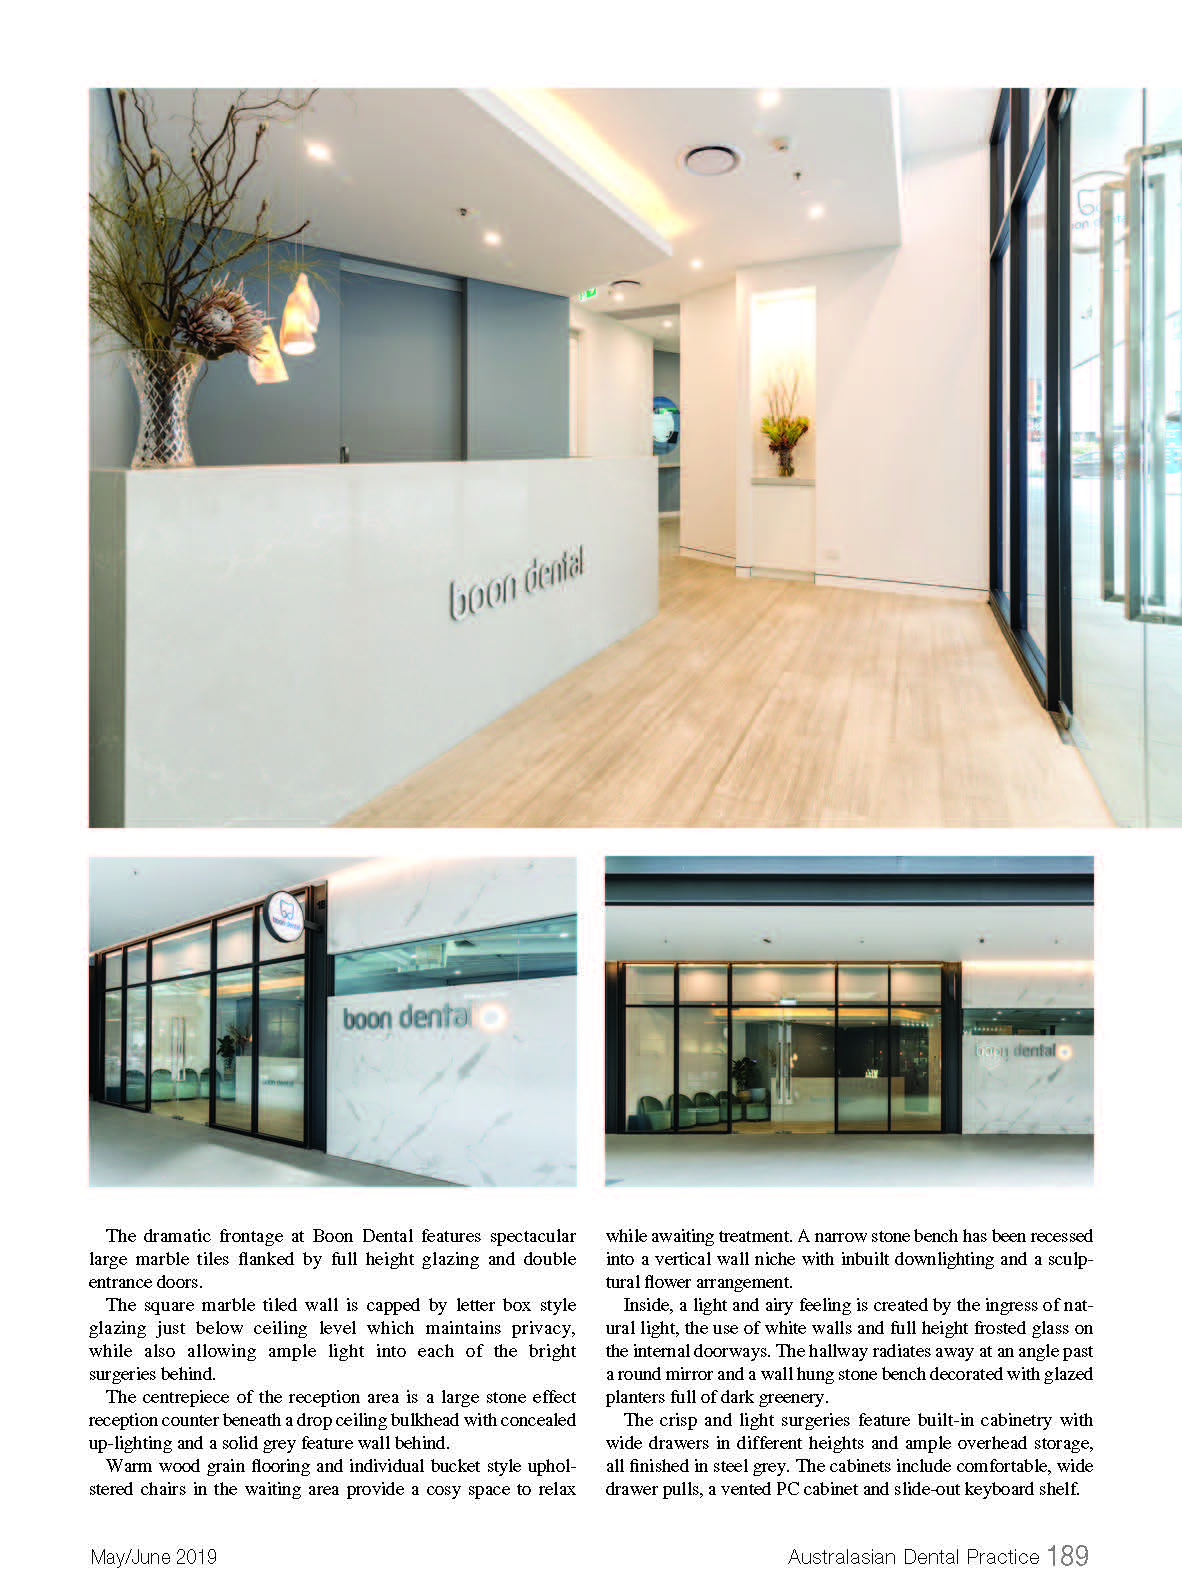 dental fitout — Articles and Info - Latest news and events